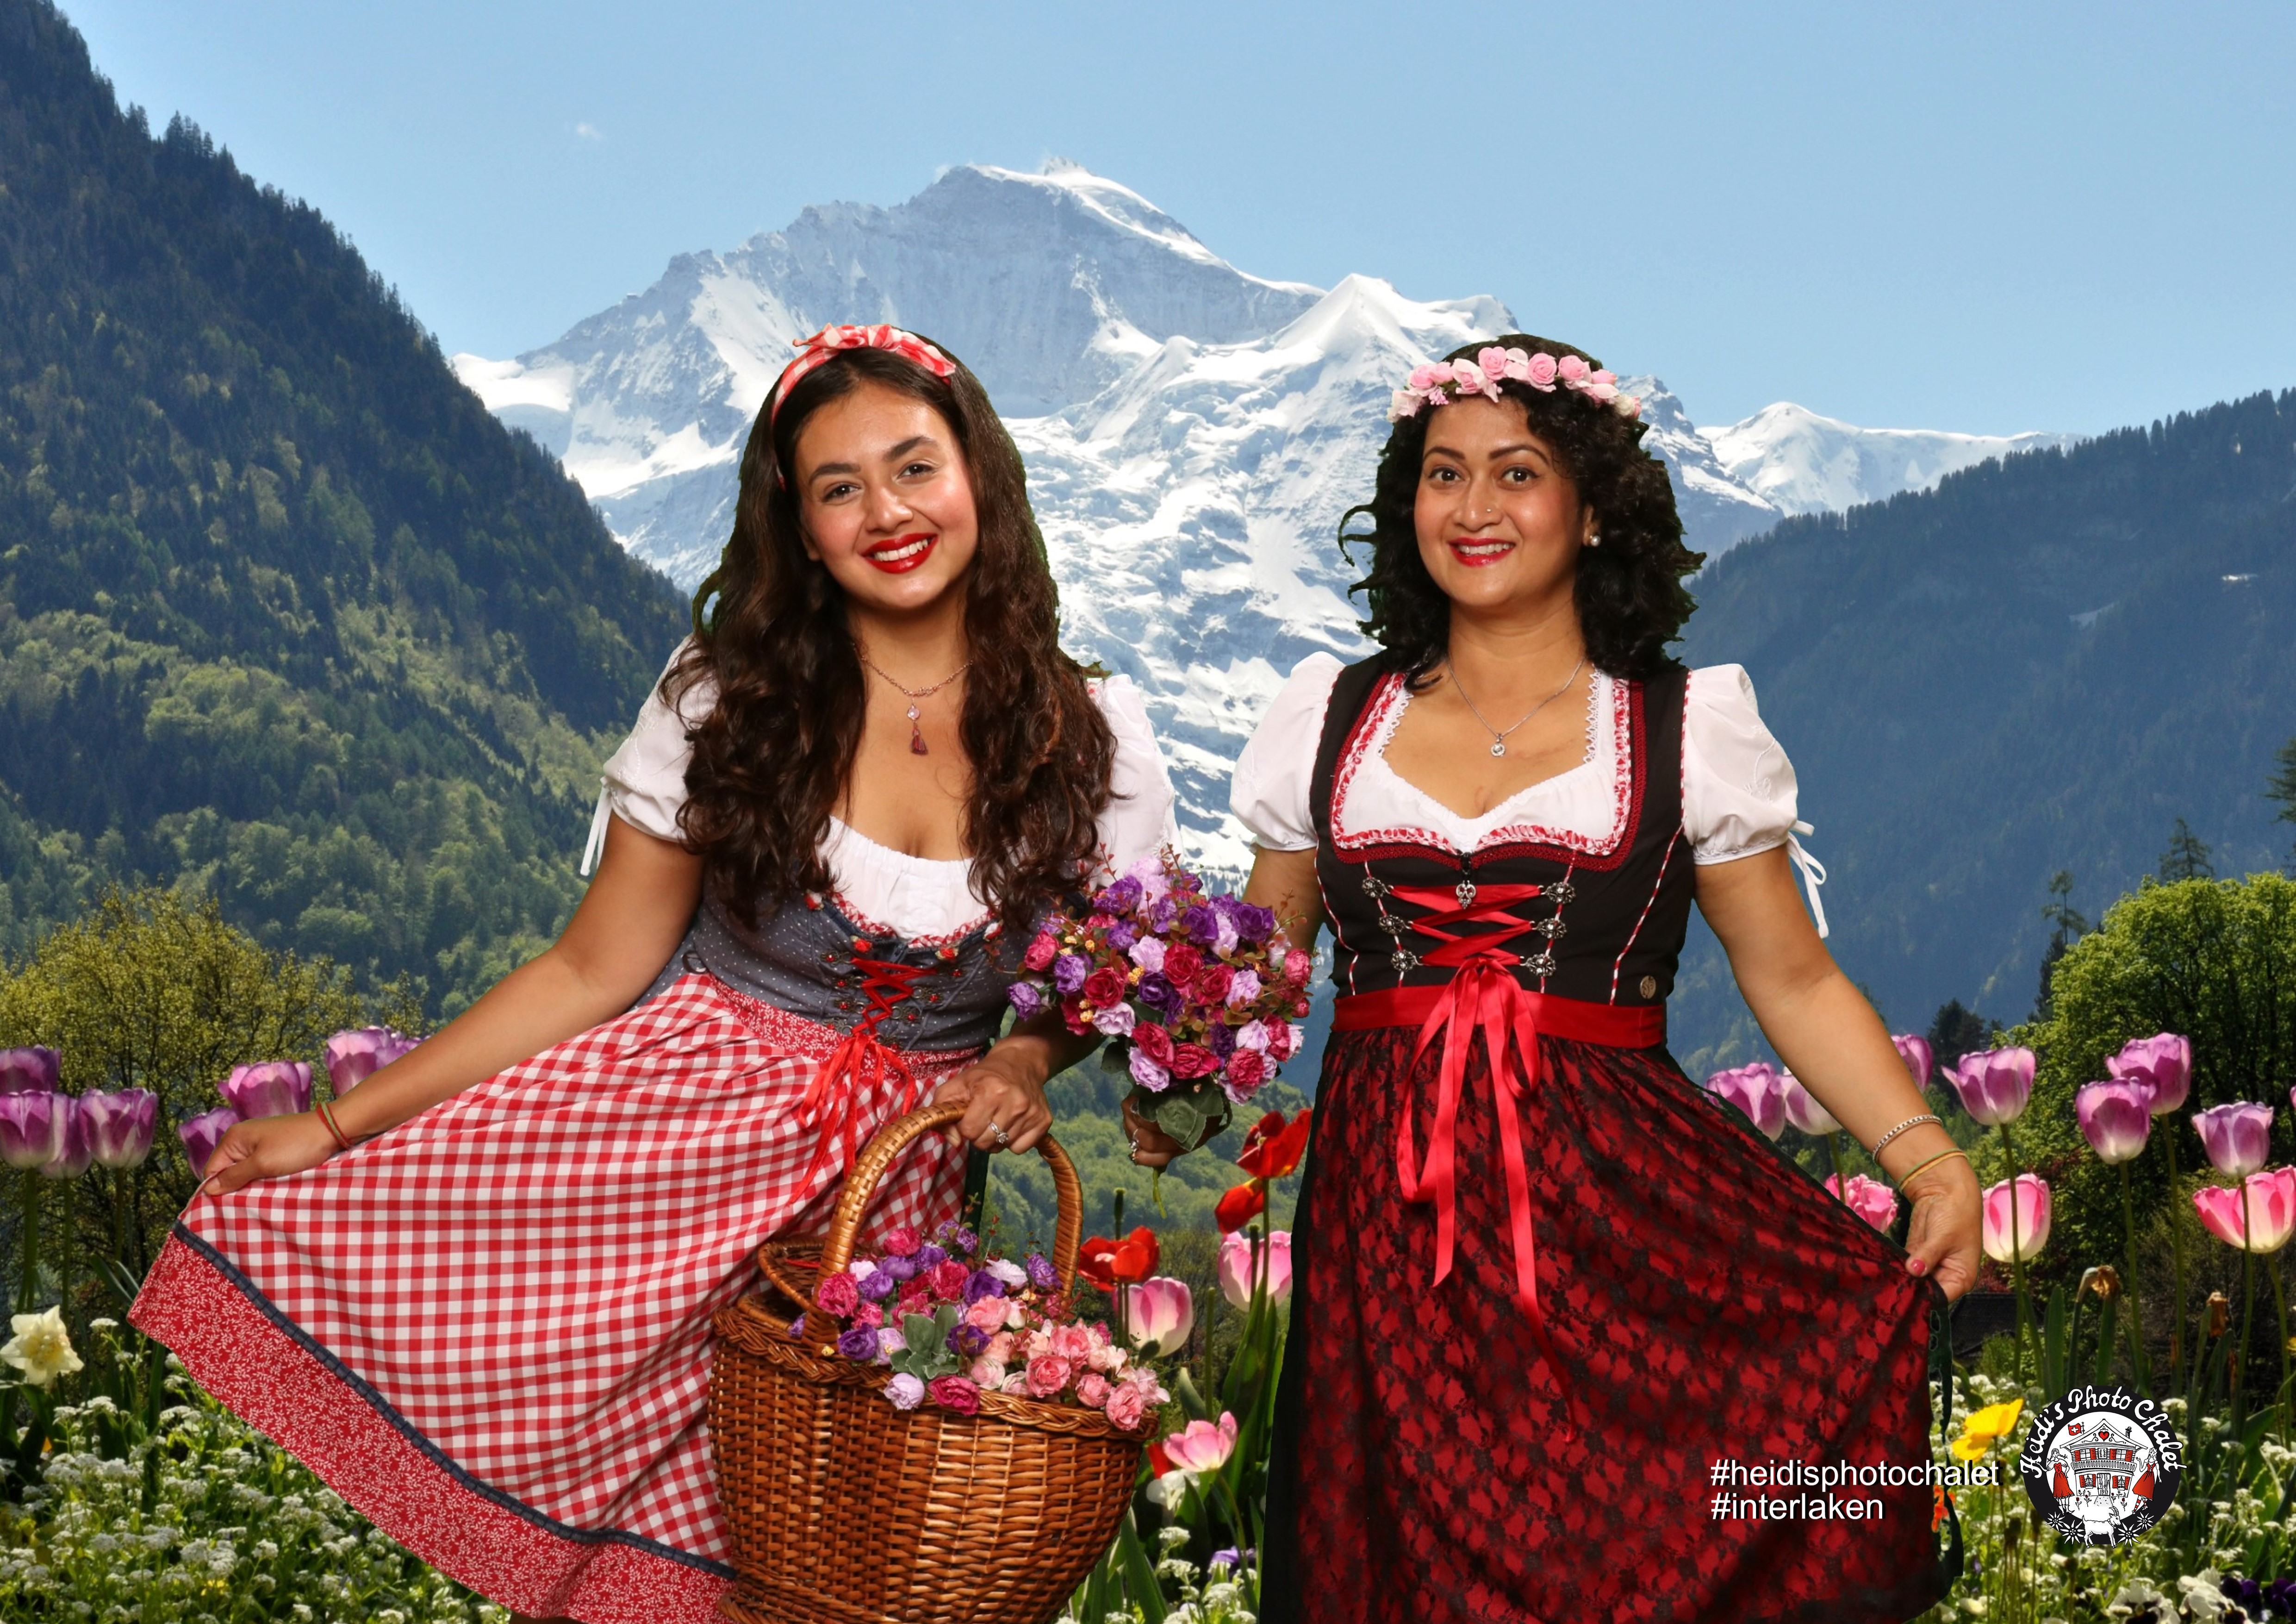 Swiss dress up fun in Interlaken